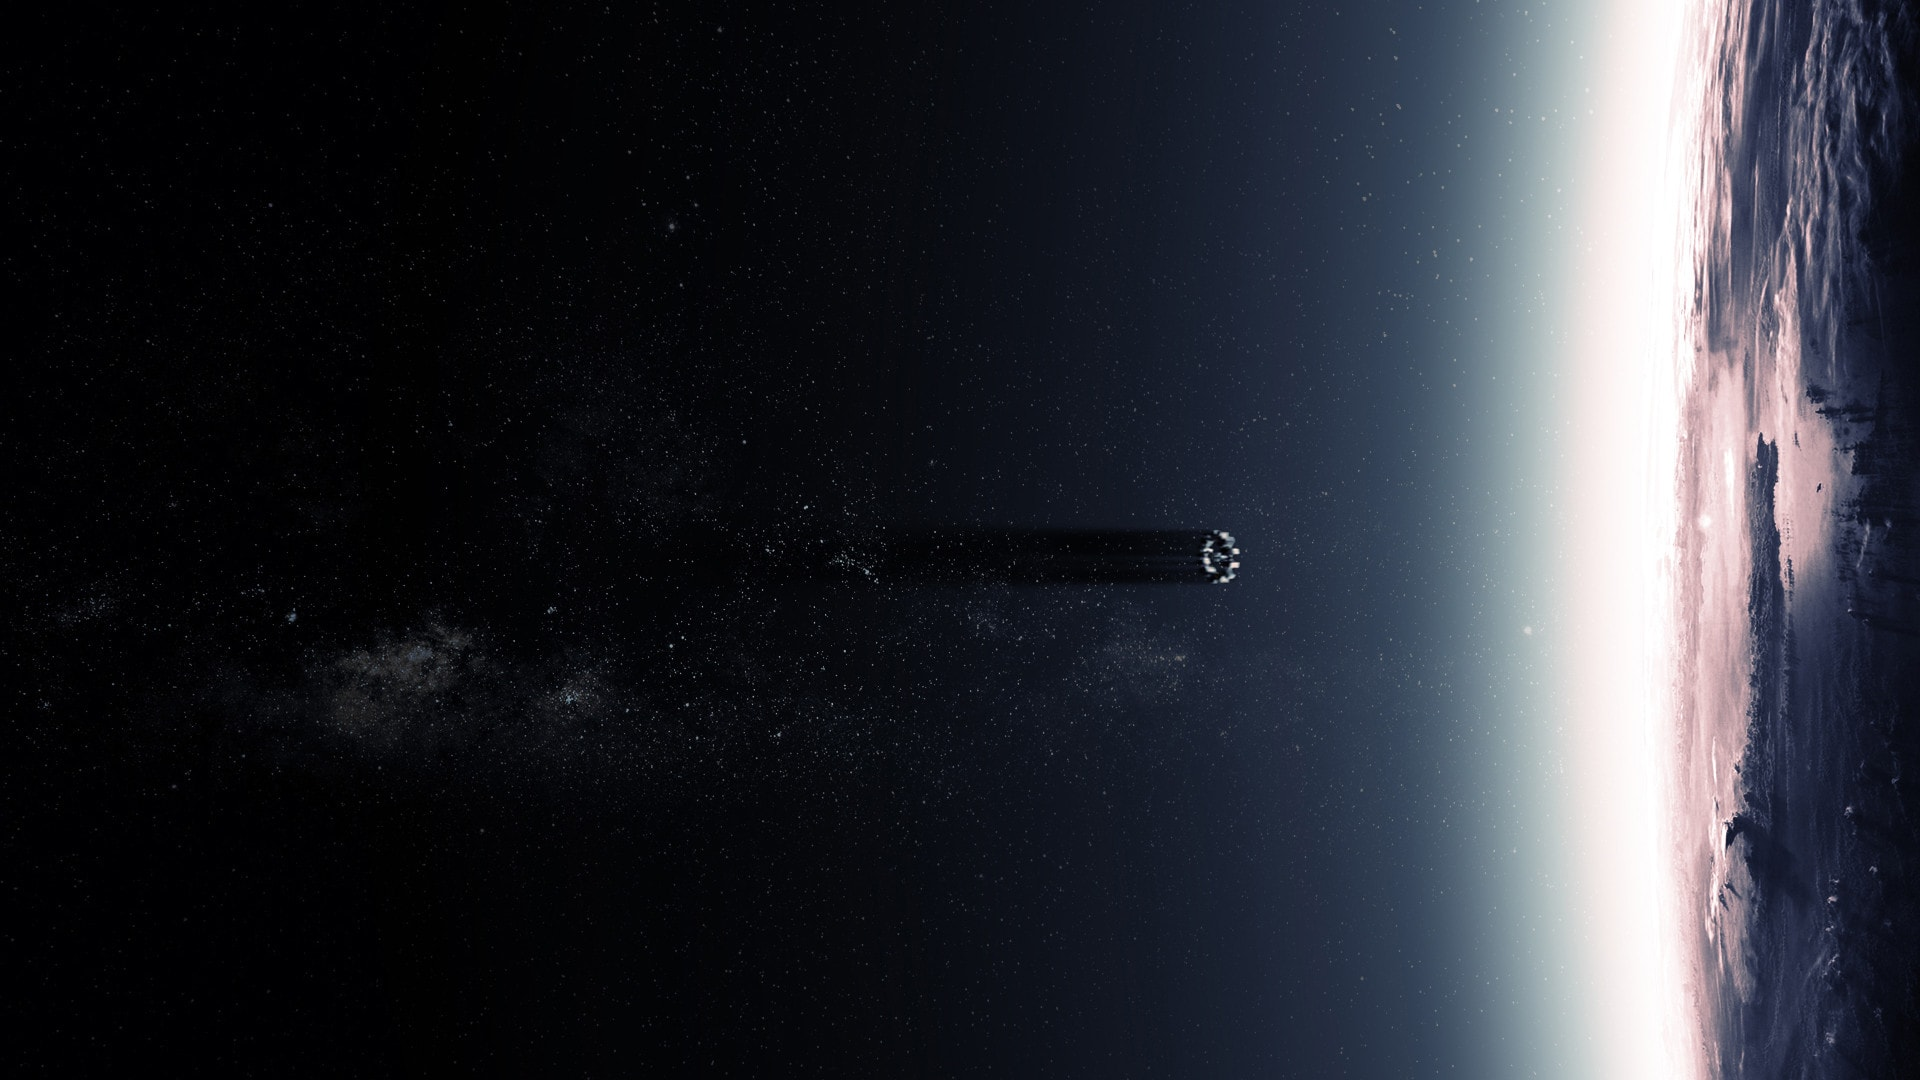 Interstellar widescreen for desktop